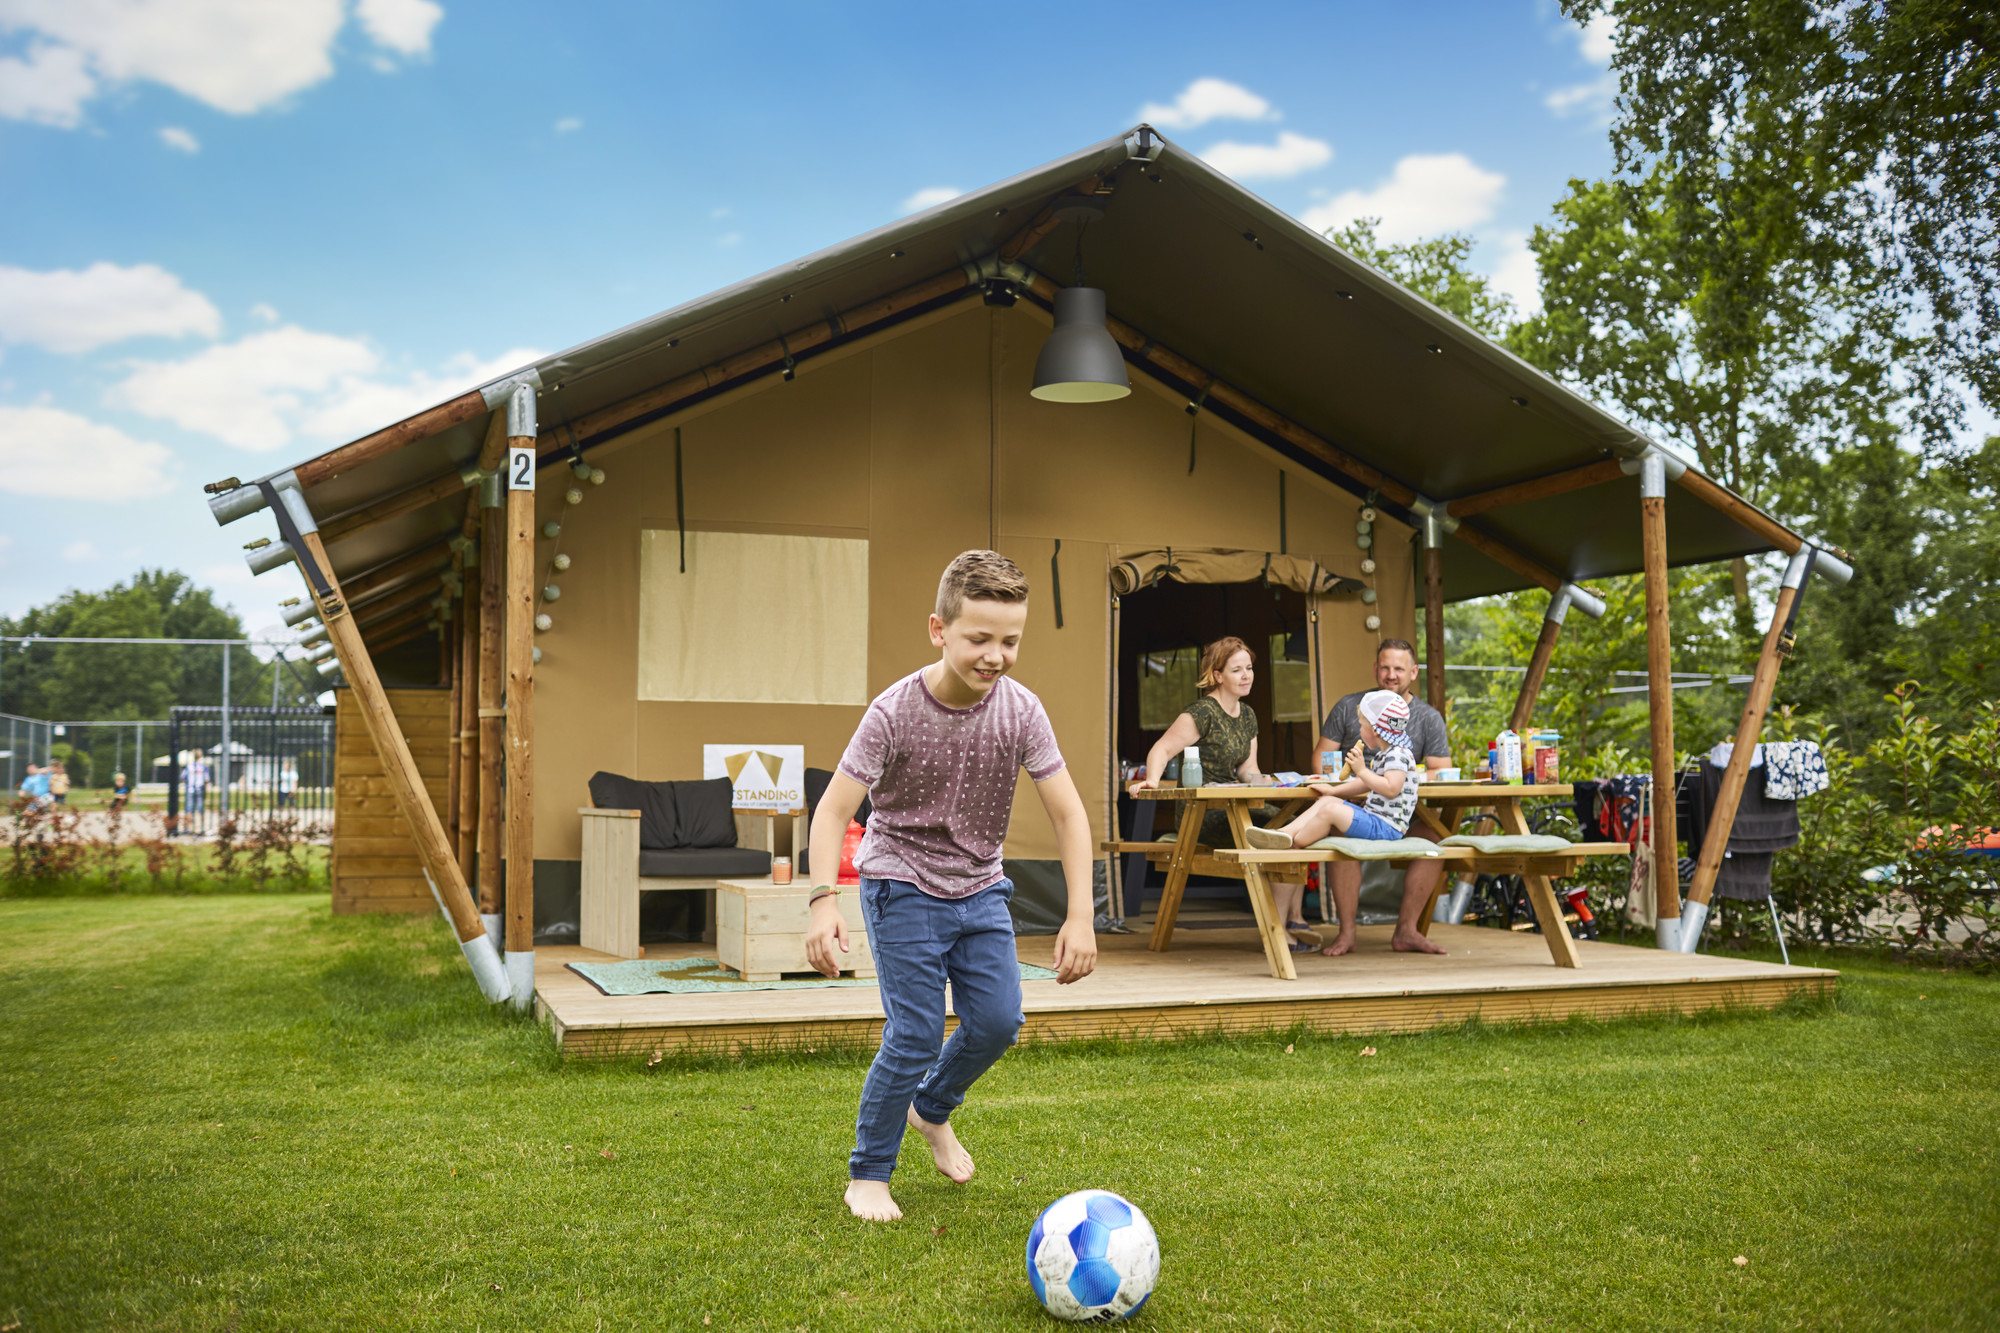 5-Persoons Glamping Tent